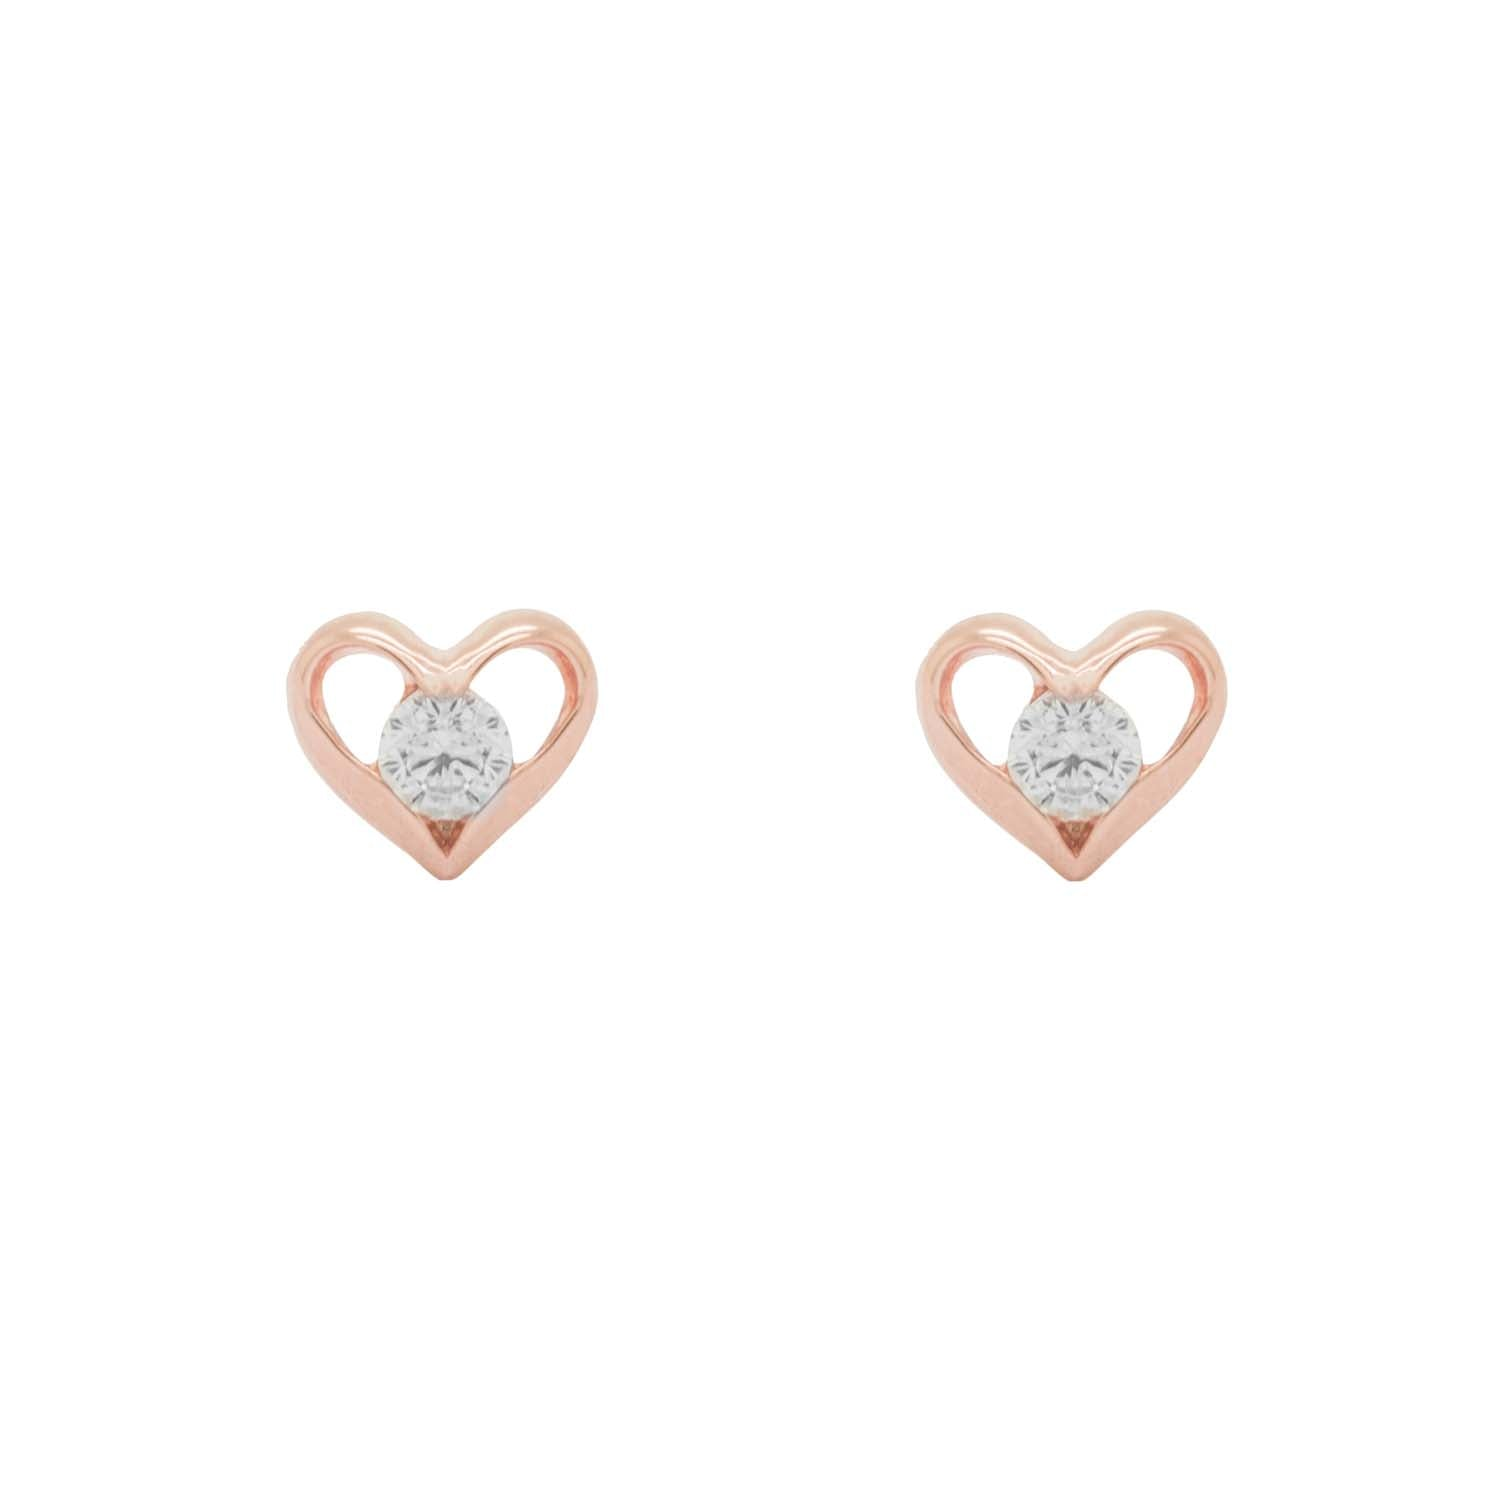 Heart Shaped Rose Gold Stud Earrings